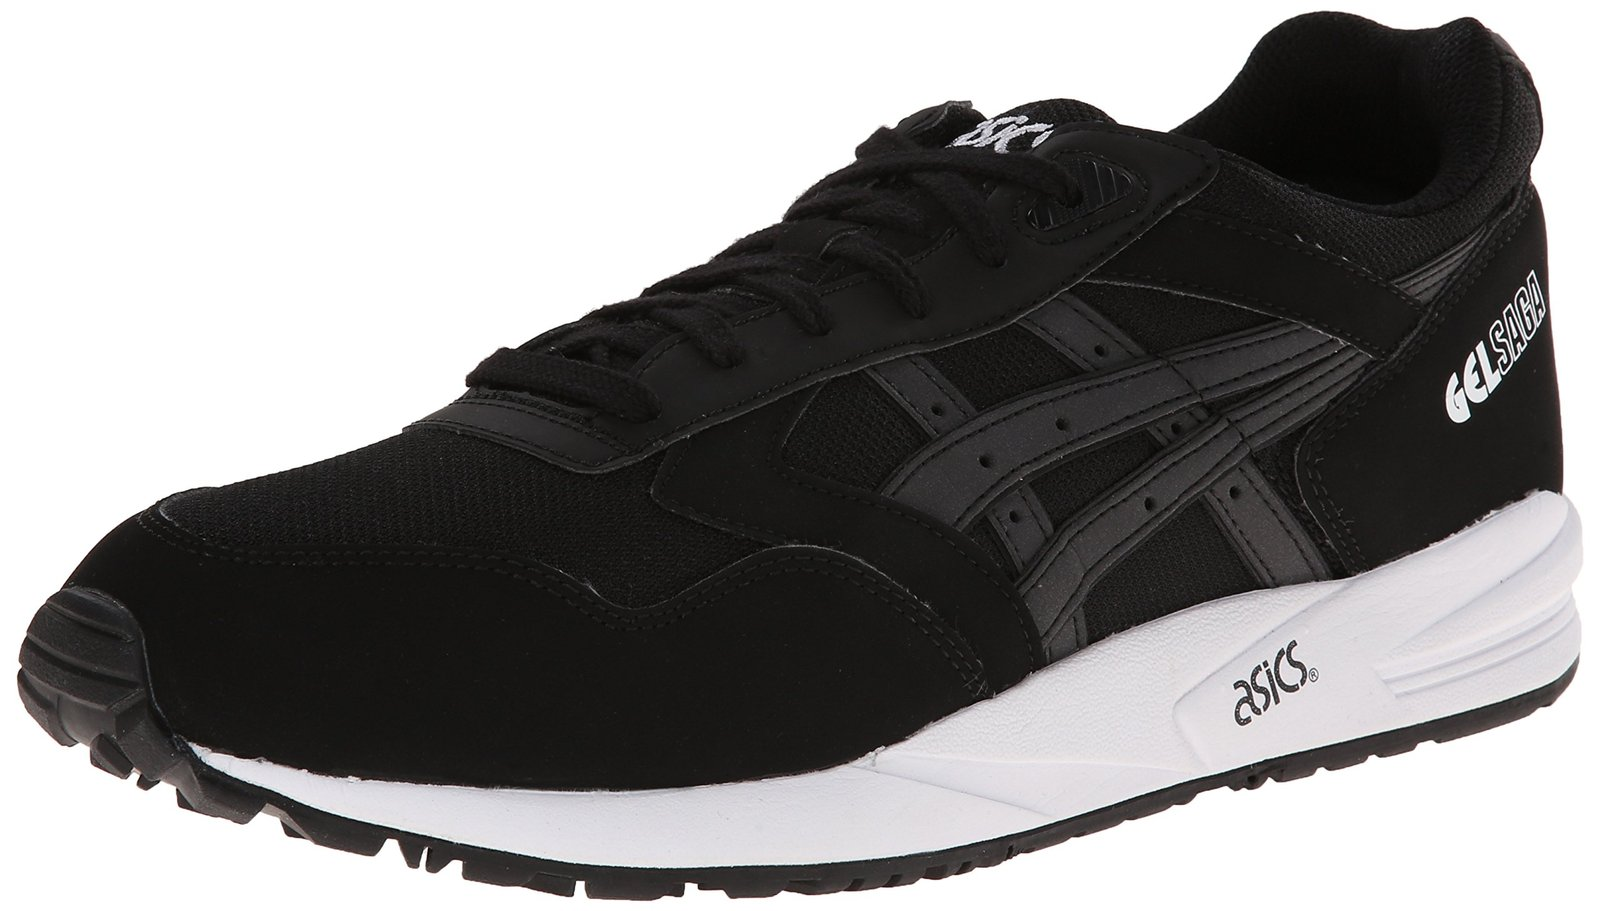 ASICS Gel-saga Retro Running Shoe, Black/Black, 5 M US